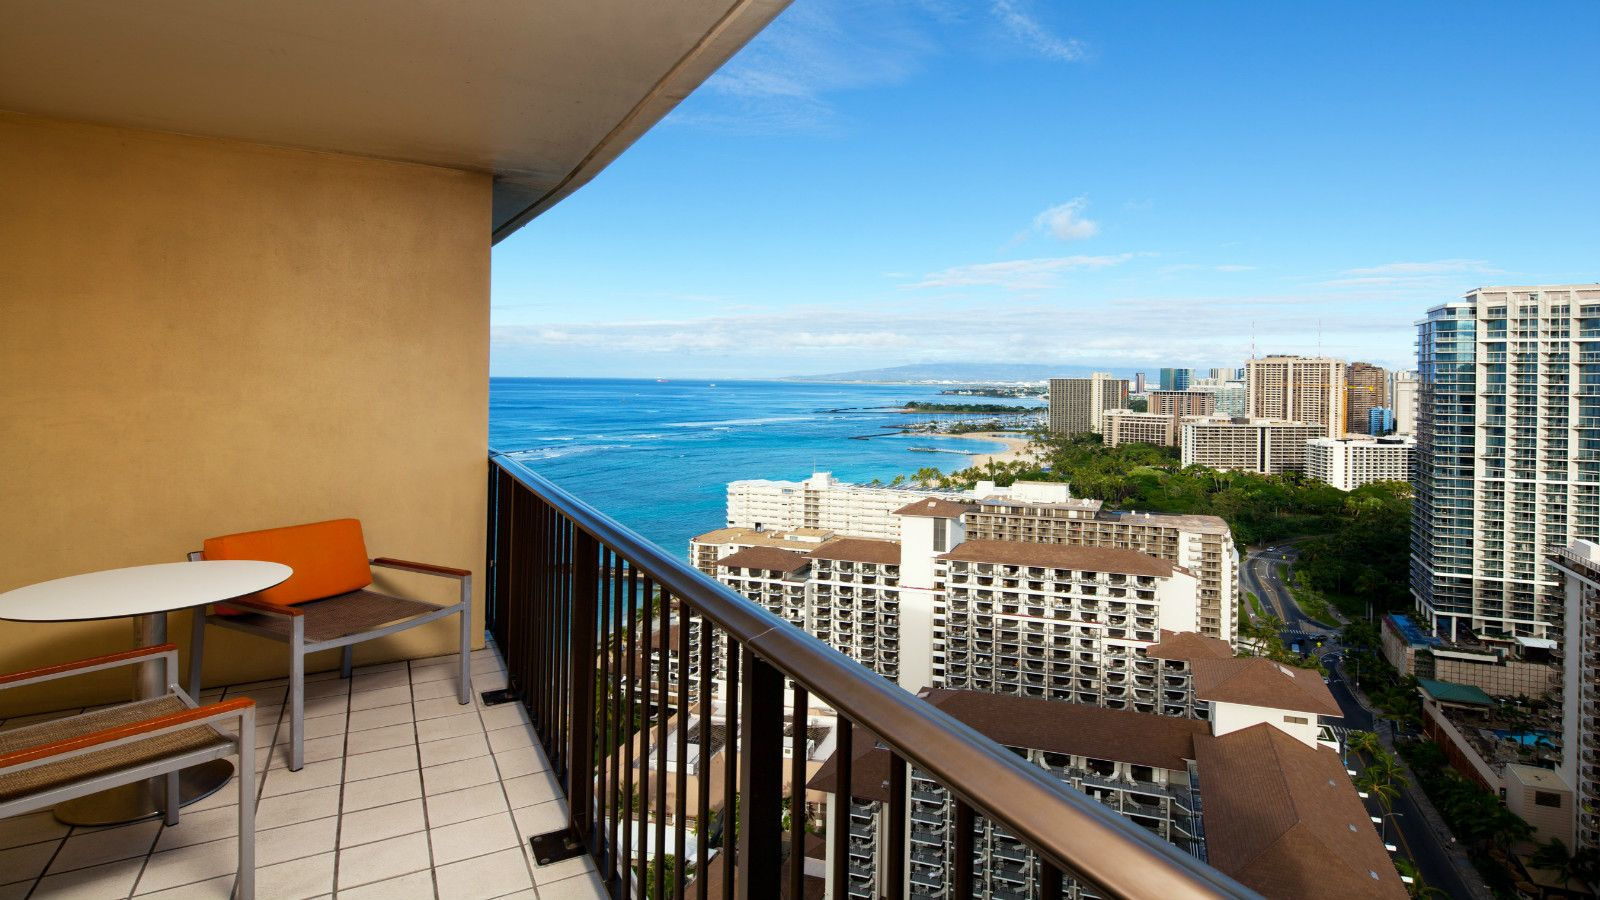 Oahu Hotel Rooms - Ocean View Rooms